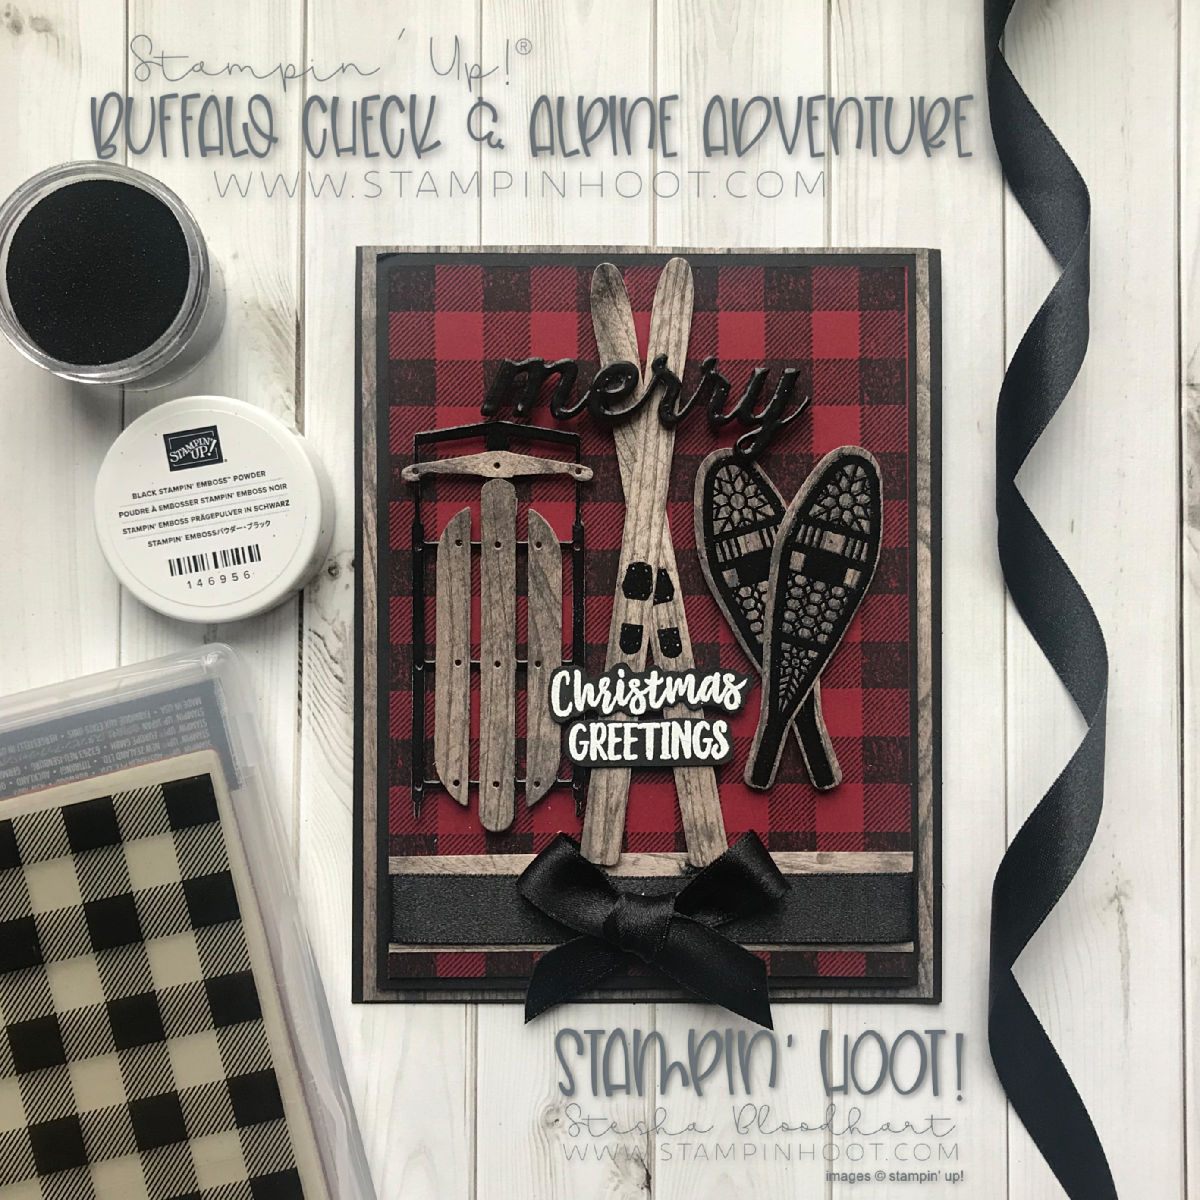 13 Wow Picks From My Pals Stamping Community Stampin